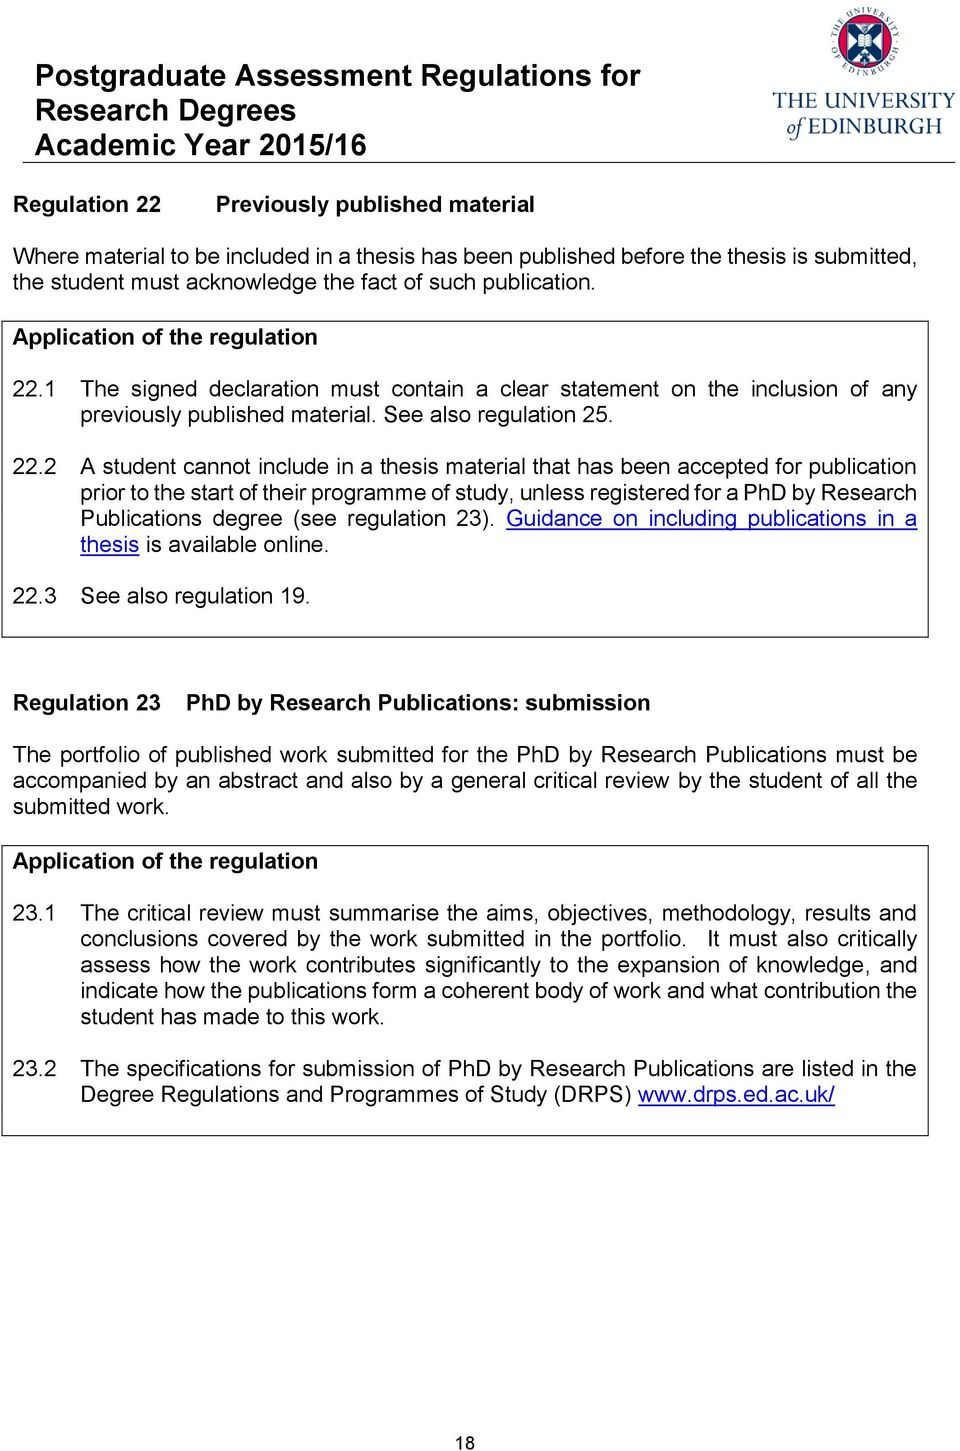 2 A student cannot include in a thesis material that has been accepted for publication prior to the start of their programme of study, unless registered for a PhD by Research Publications degree (see